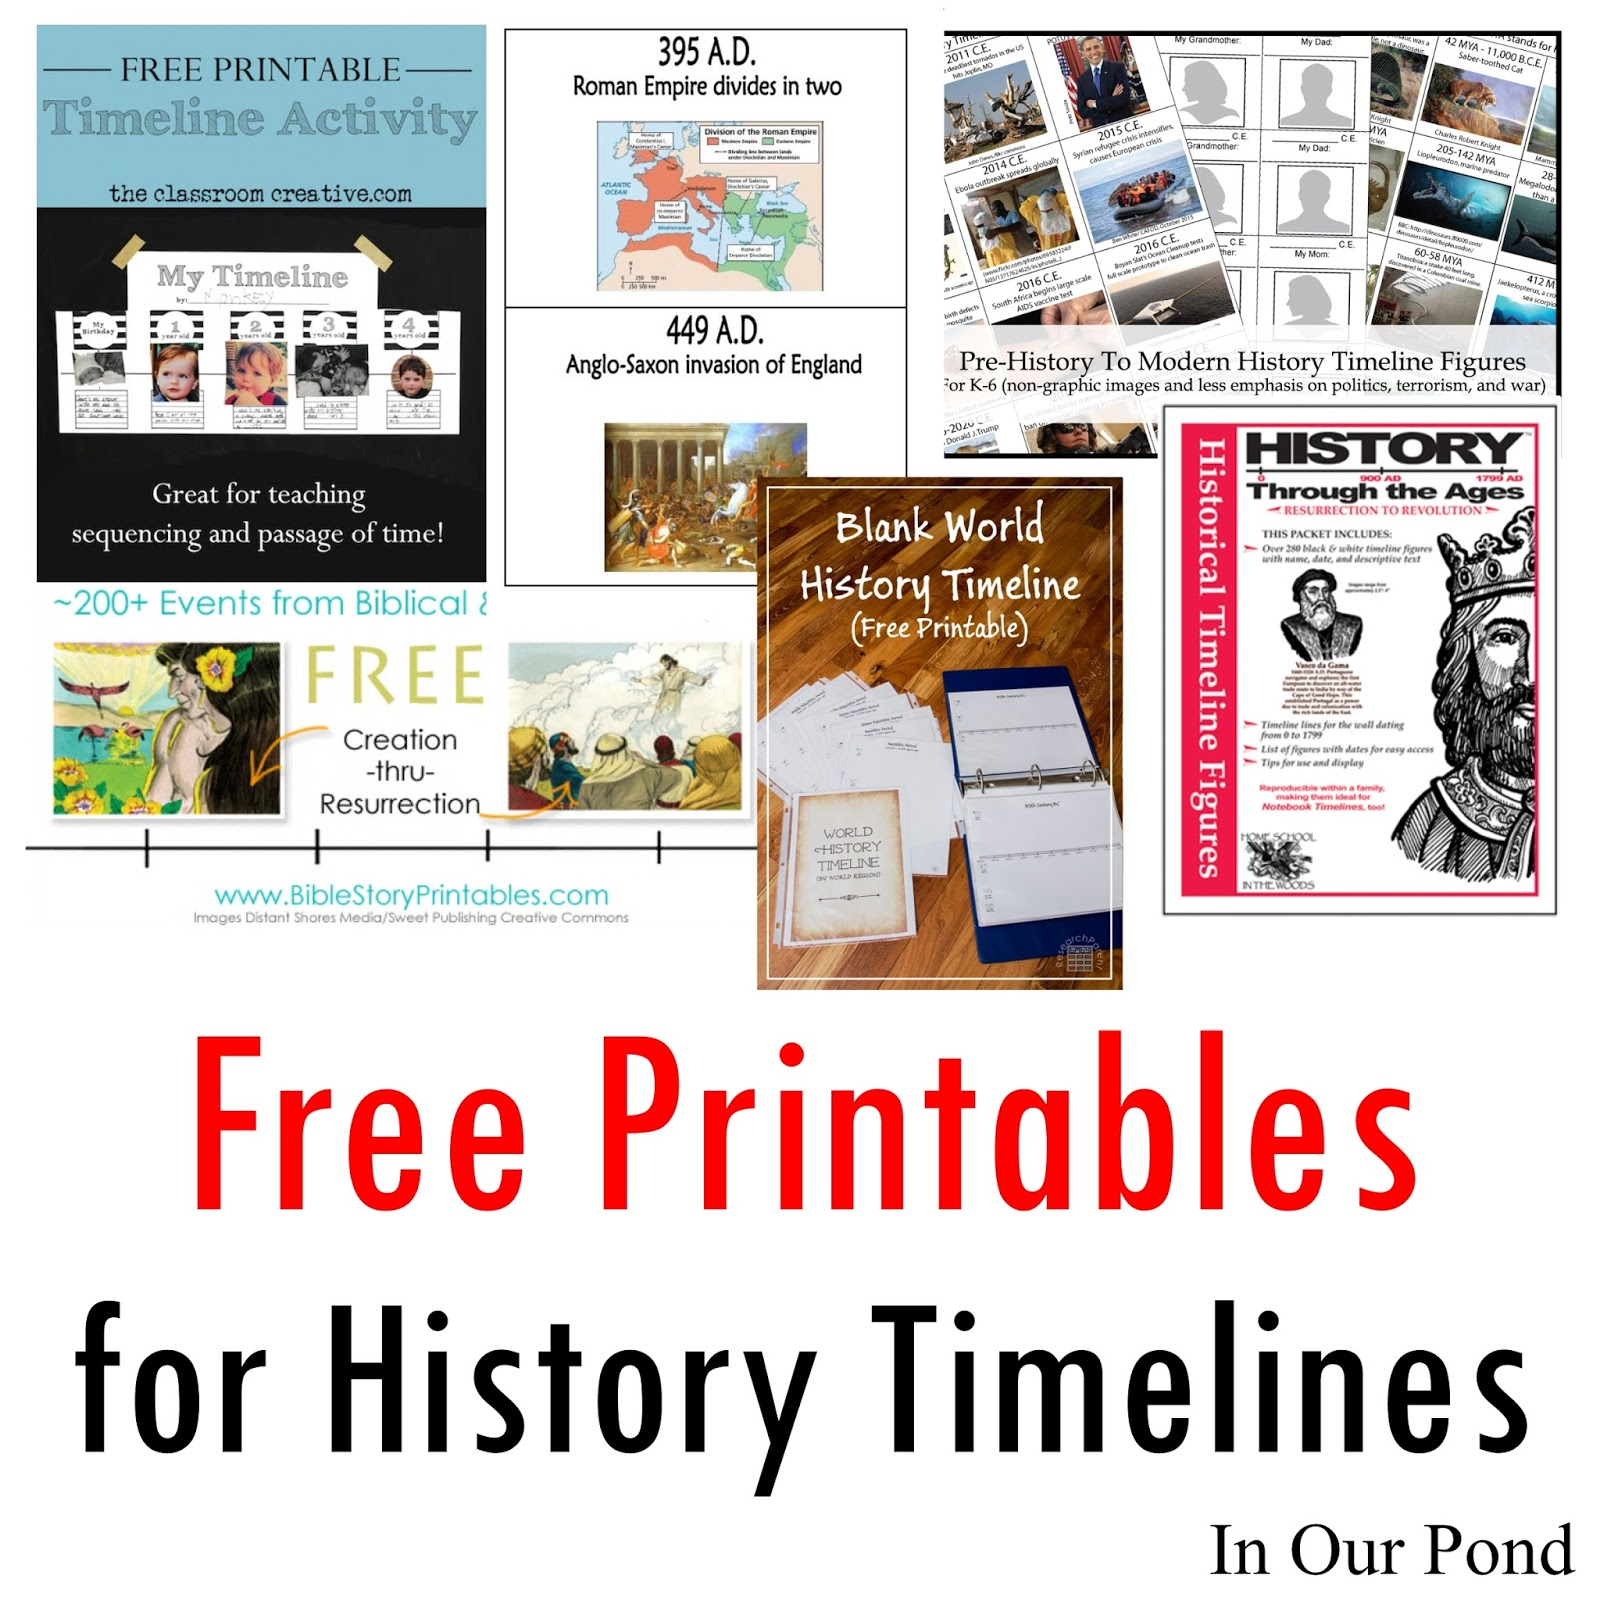 Free Printables for History Timelines   In Our Pond